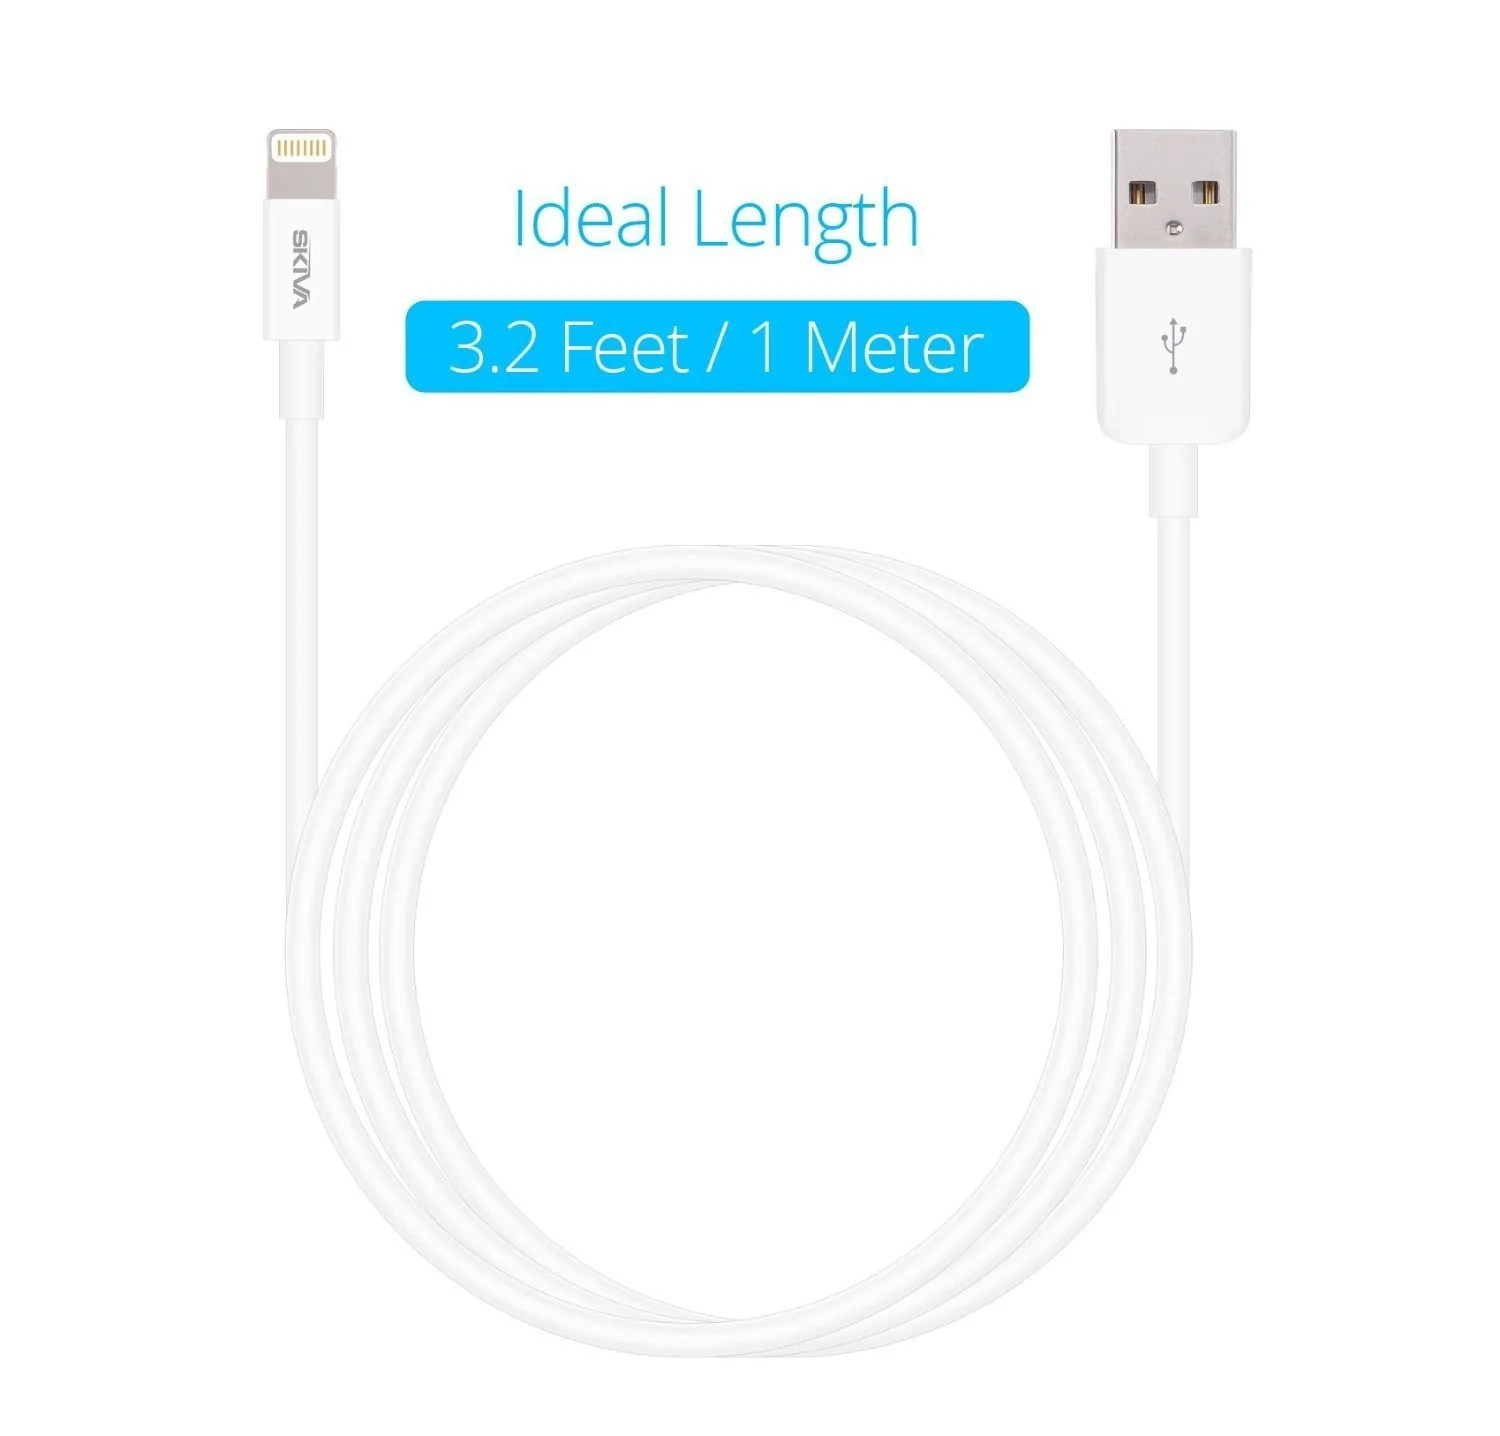 small resolution of apple mfi certified lightning cables 7 pack skiva usblink 3 2 ft 1m fastest sync and charge 8 pin cable cb144